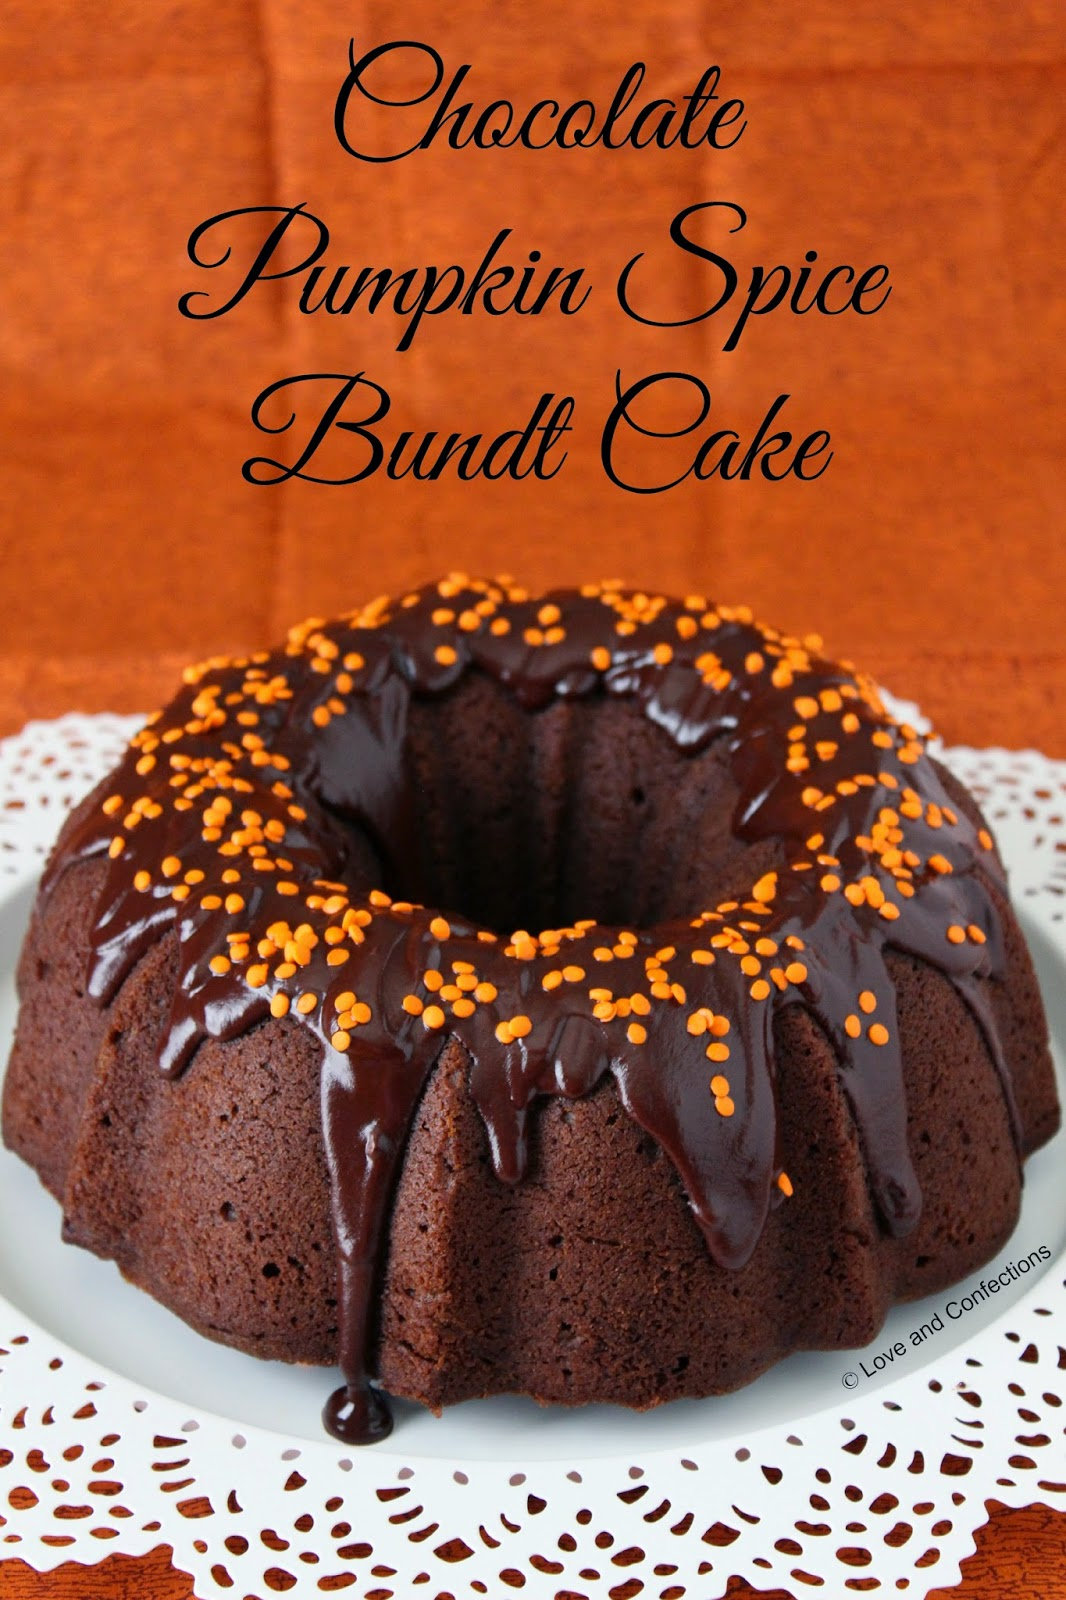 Chocolate Pumpkin Spice Bundt Cake by Love and Confections